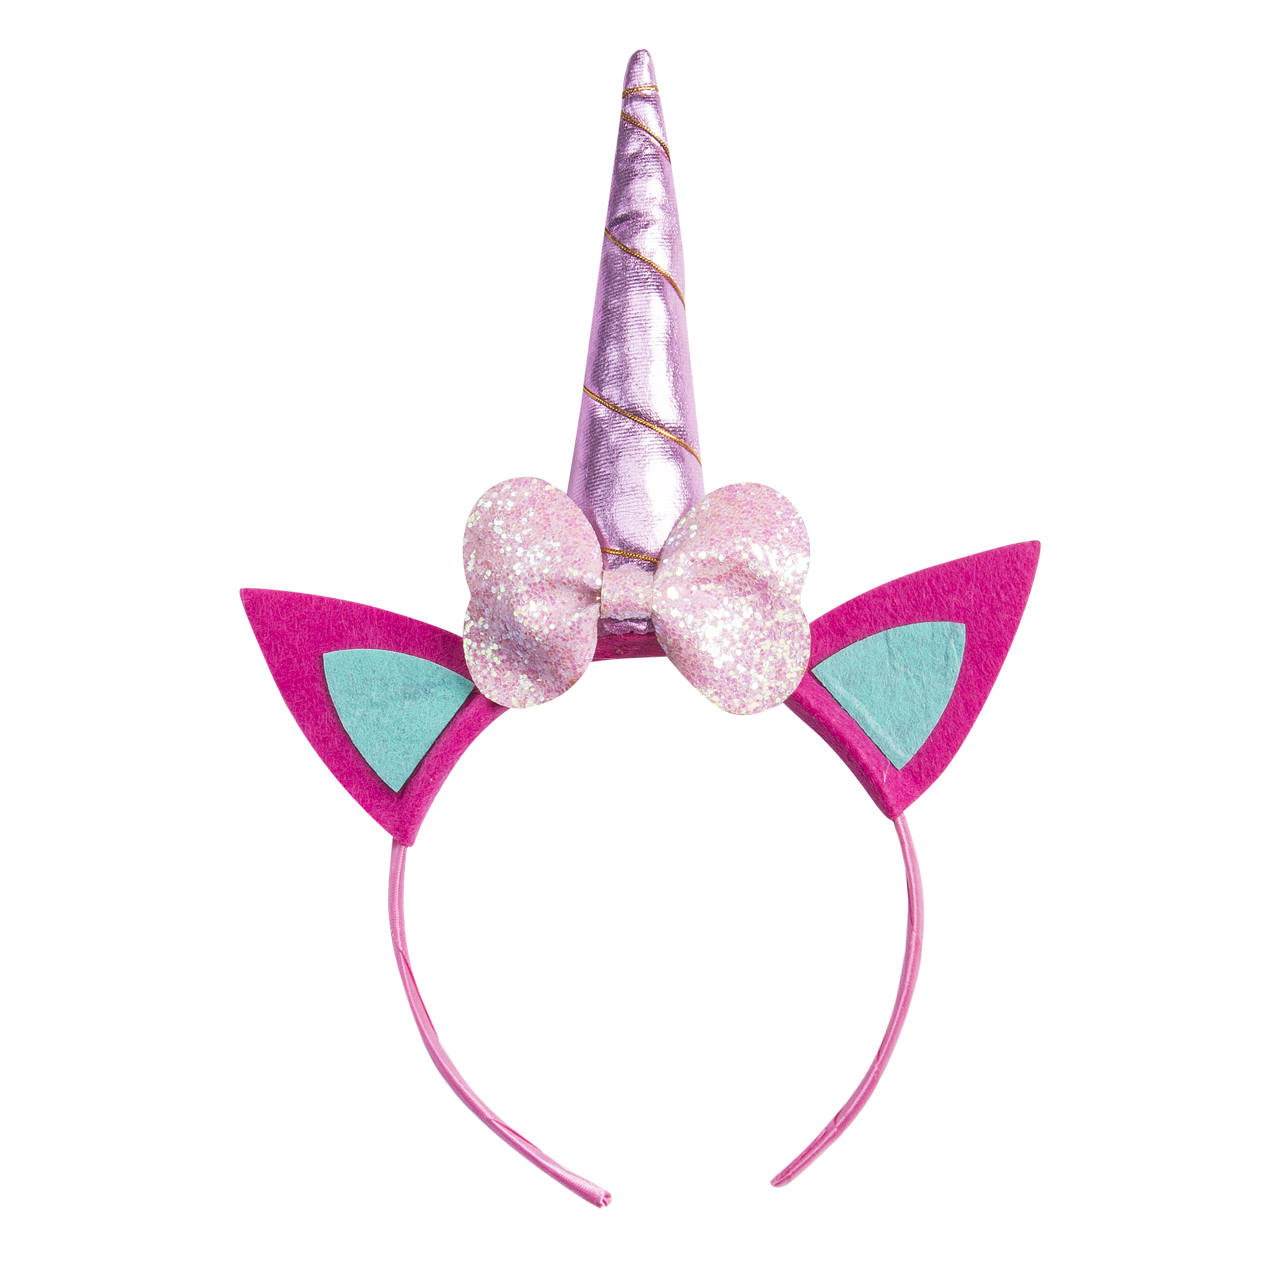 080e328bf99 Kids Children Girls Boys Accessories Cute Magical Unicorn Headbands Pretty  Cosplay Costume Kid s Party Lovely Bowknot Headwear on Aliexpress.com